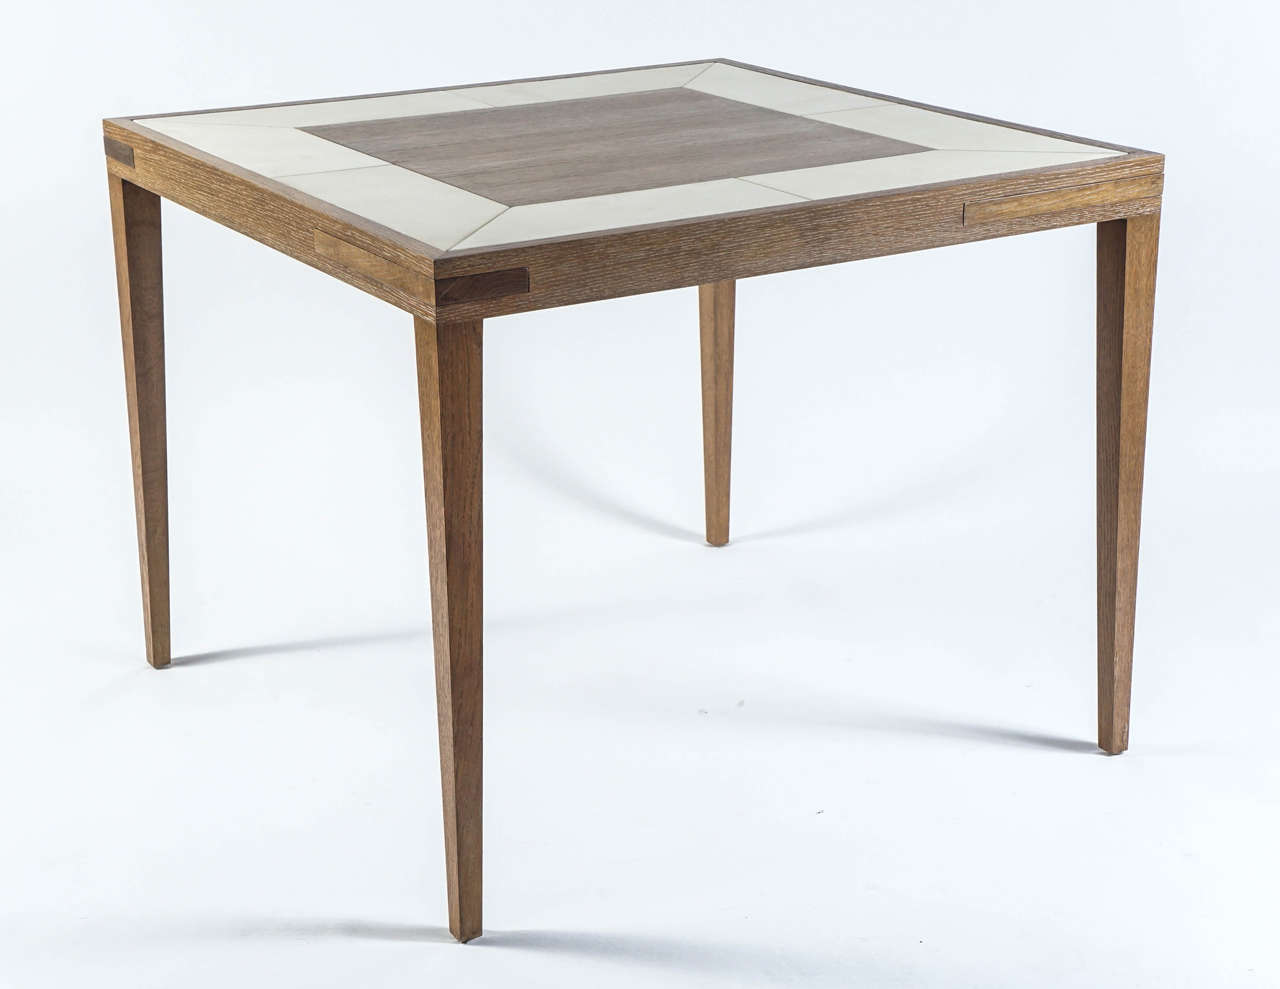 Round game tables - Game Table By Mattaliano For Holly Hunt 2